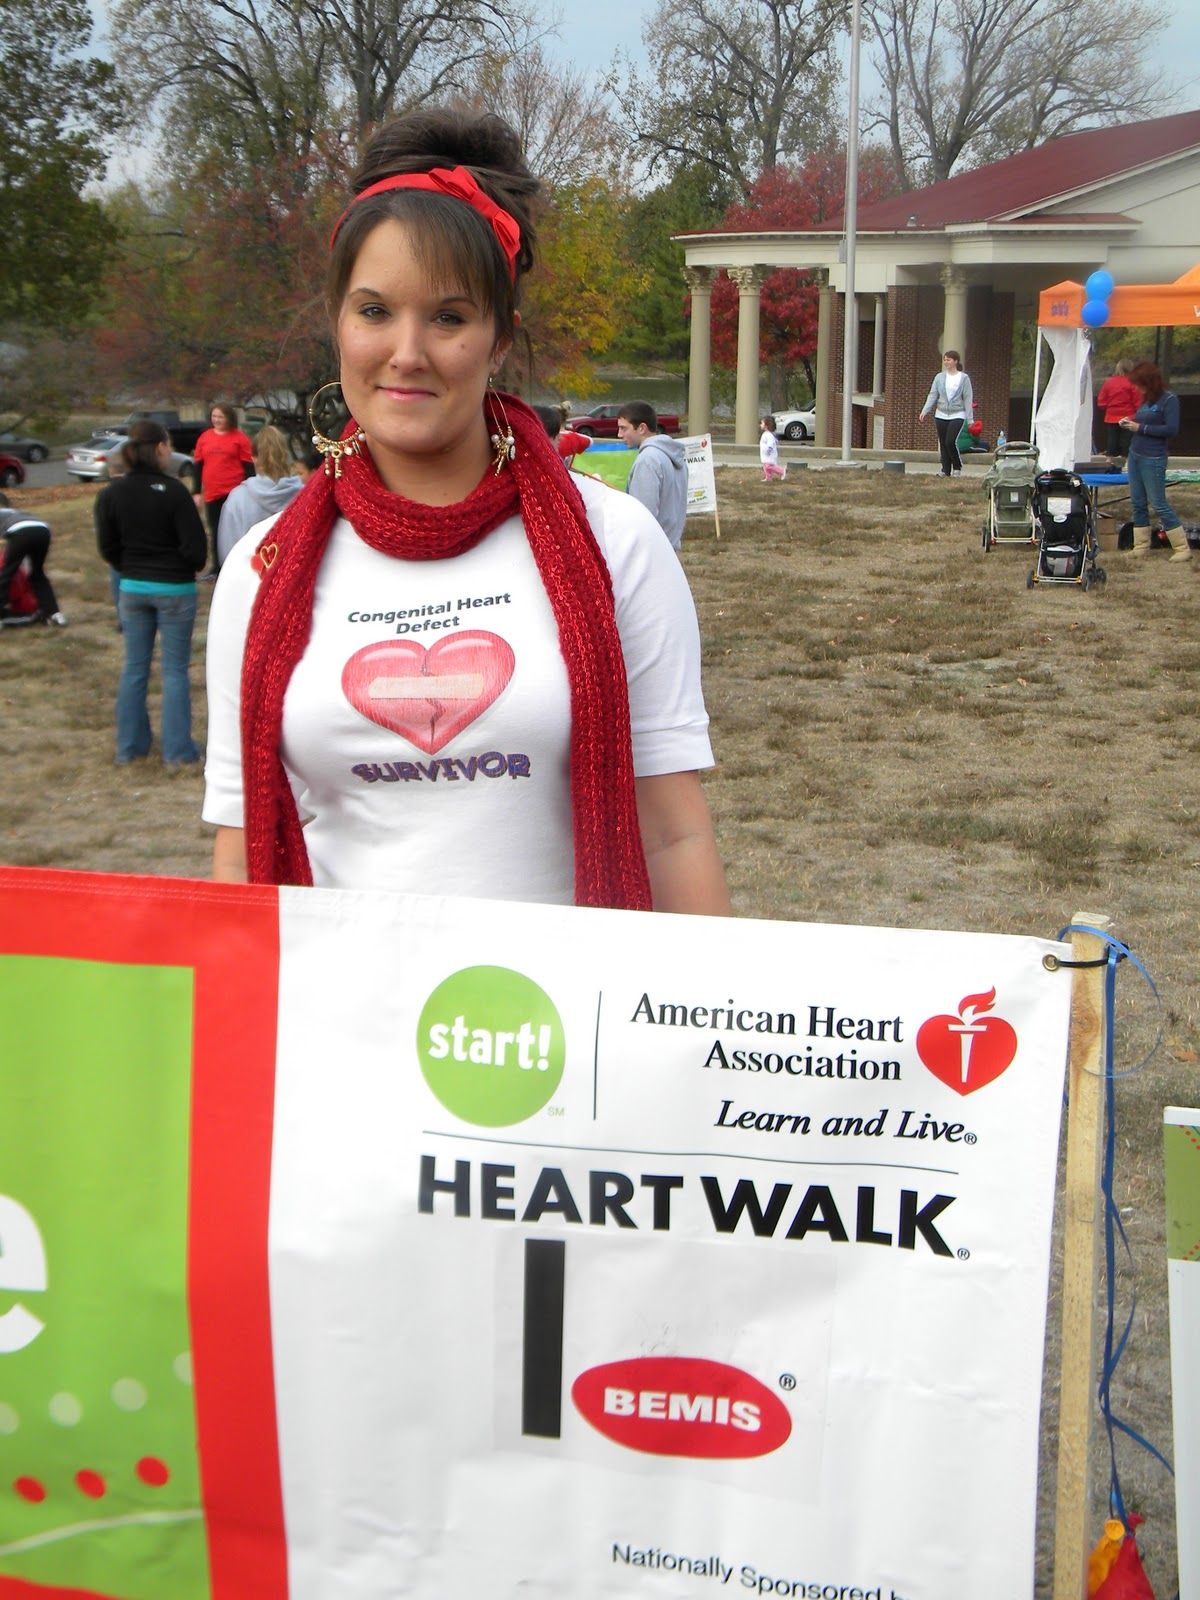 The Childrens Heart Foundation is a notforprofit organization that funds the most promising research to advance the diagnosis treatment and prevention of